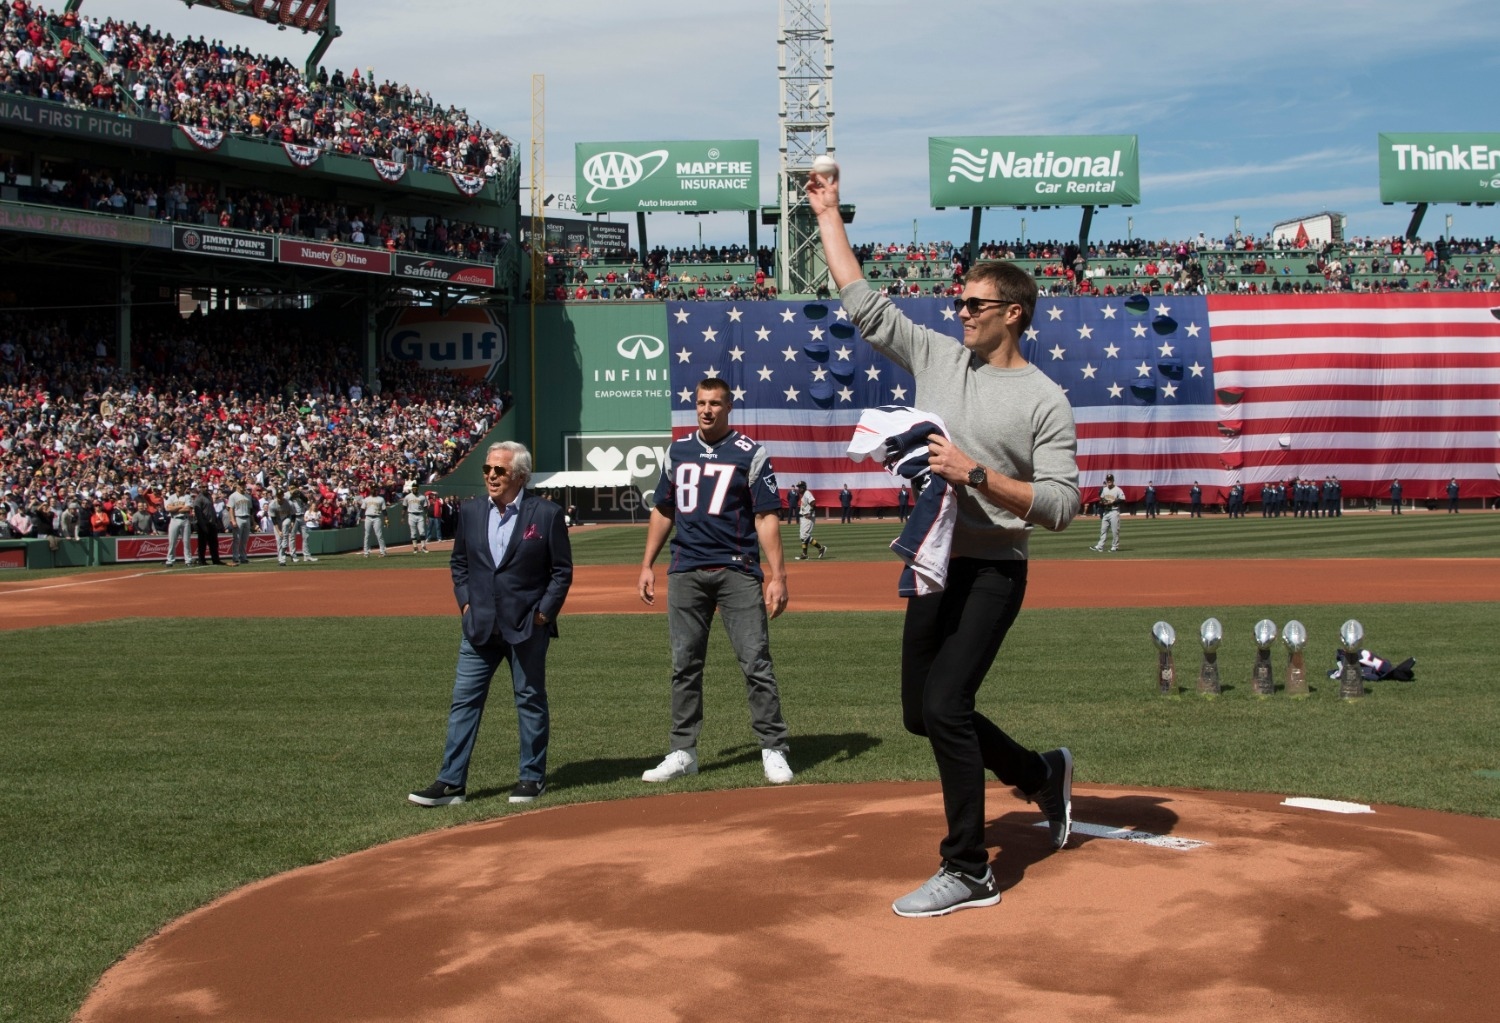 Tom Brady has a twin sister who is married to former Red Sox star Kevin Youkilis.